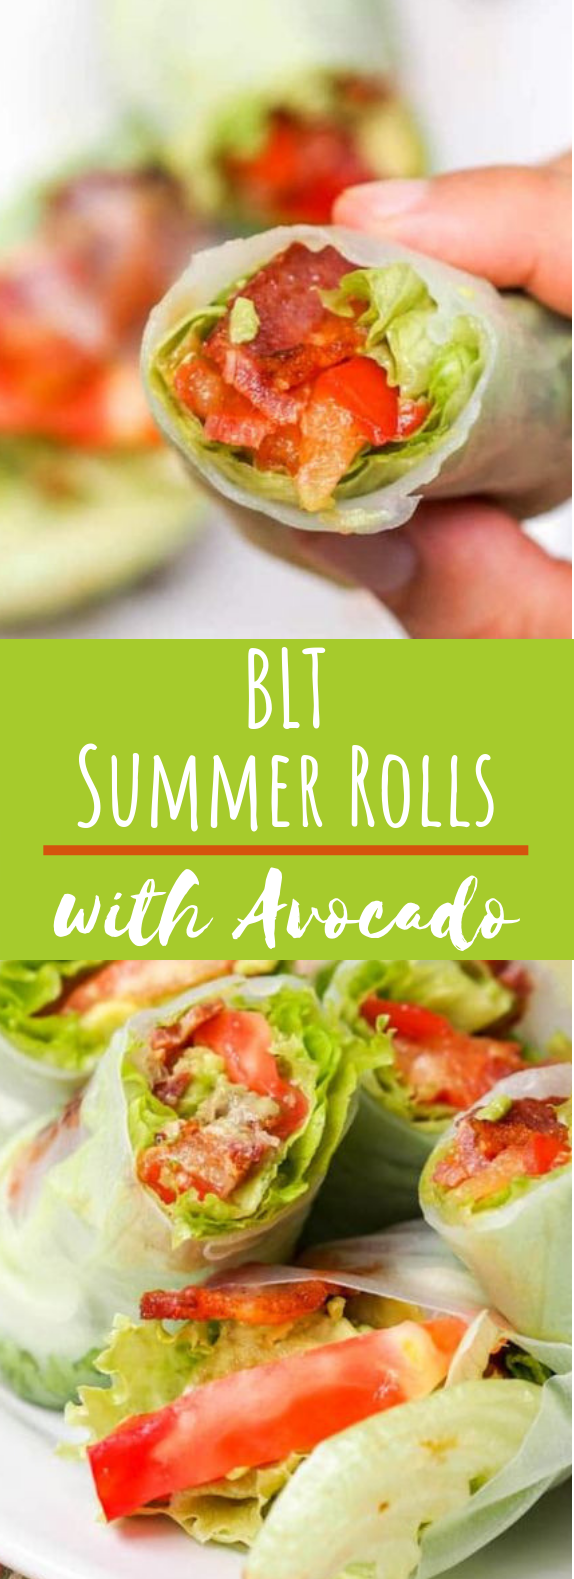 BLT Lettuce Wraps with Avocado #healthy #lunch